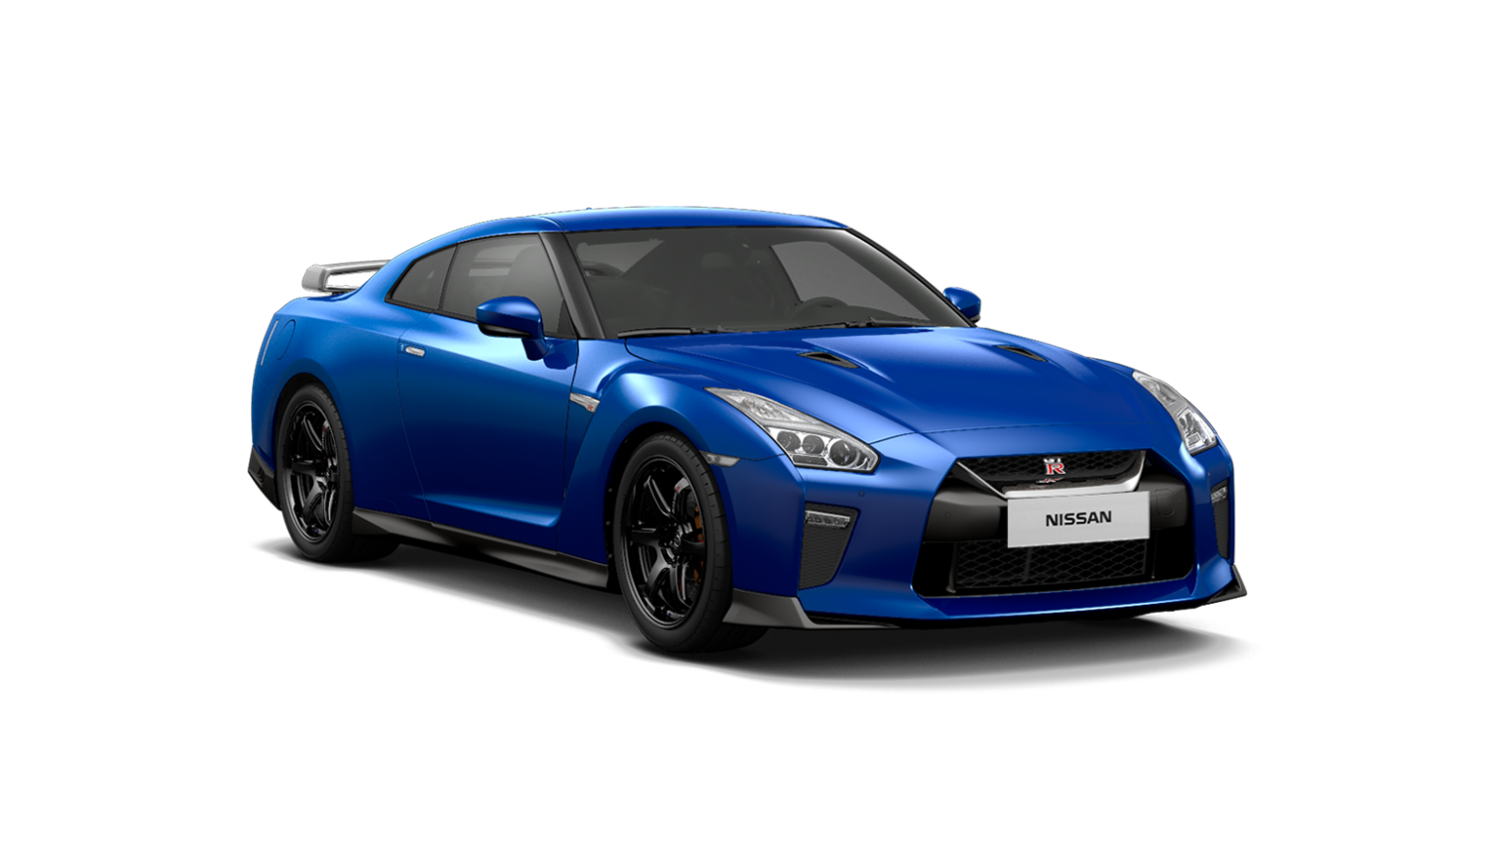 prix et caract ristiques nissan gt r supercar nissan. Black Bedroom Furniture Sets. Home Design Ideas